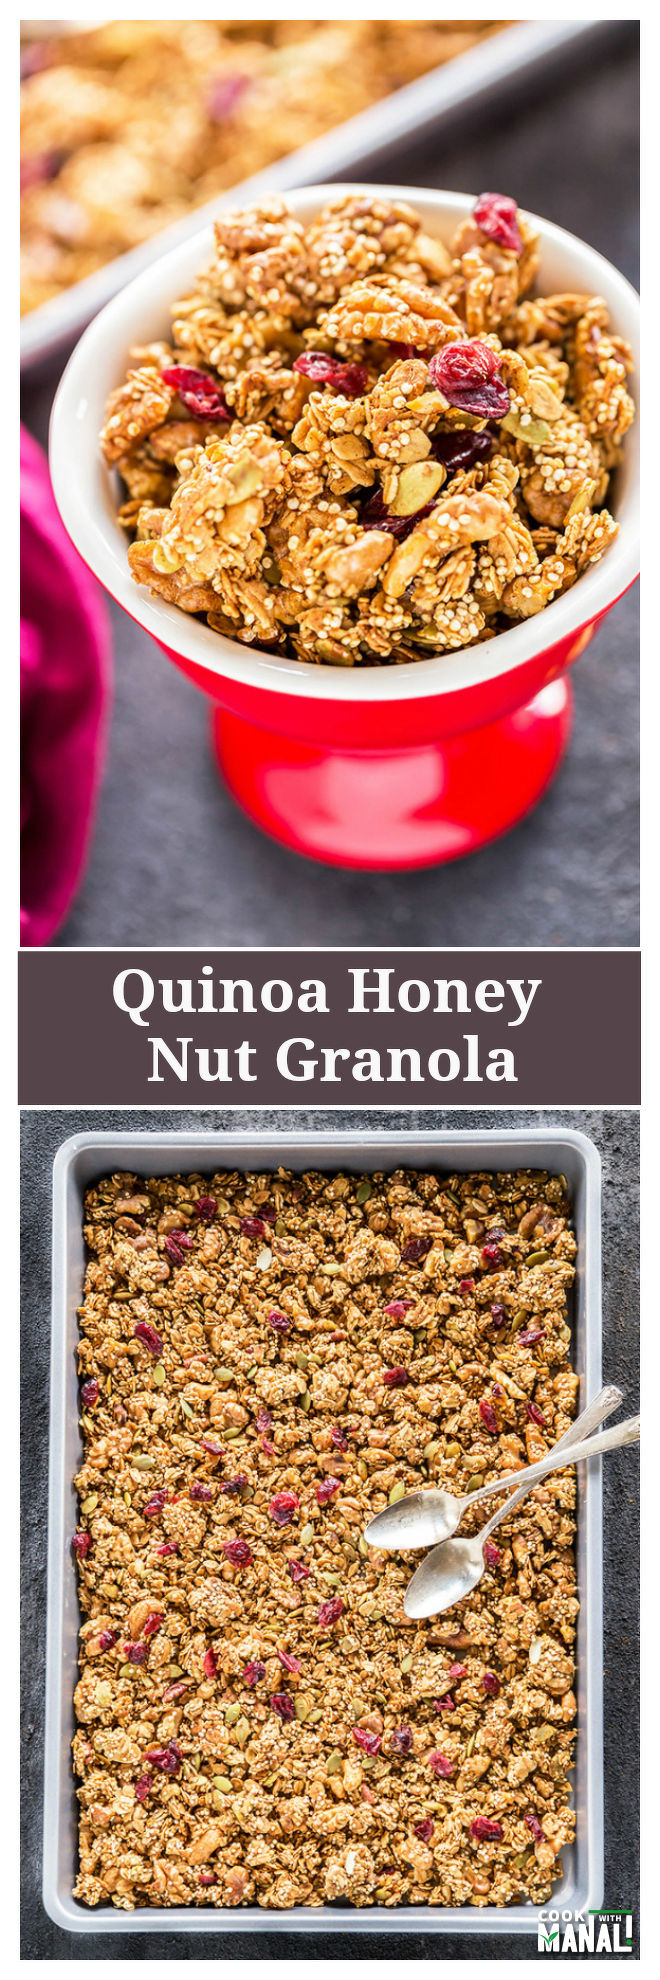 quinoa-honey-nut-granola-collage